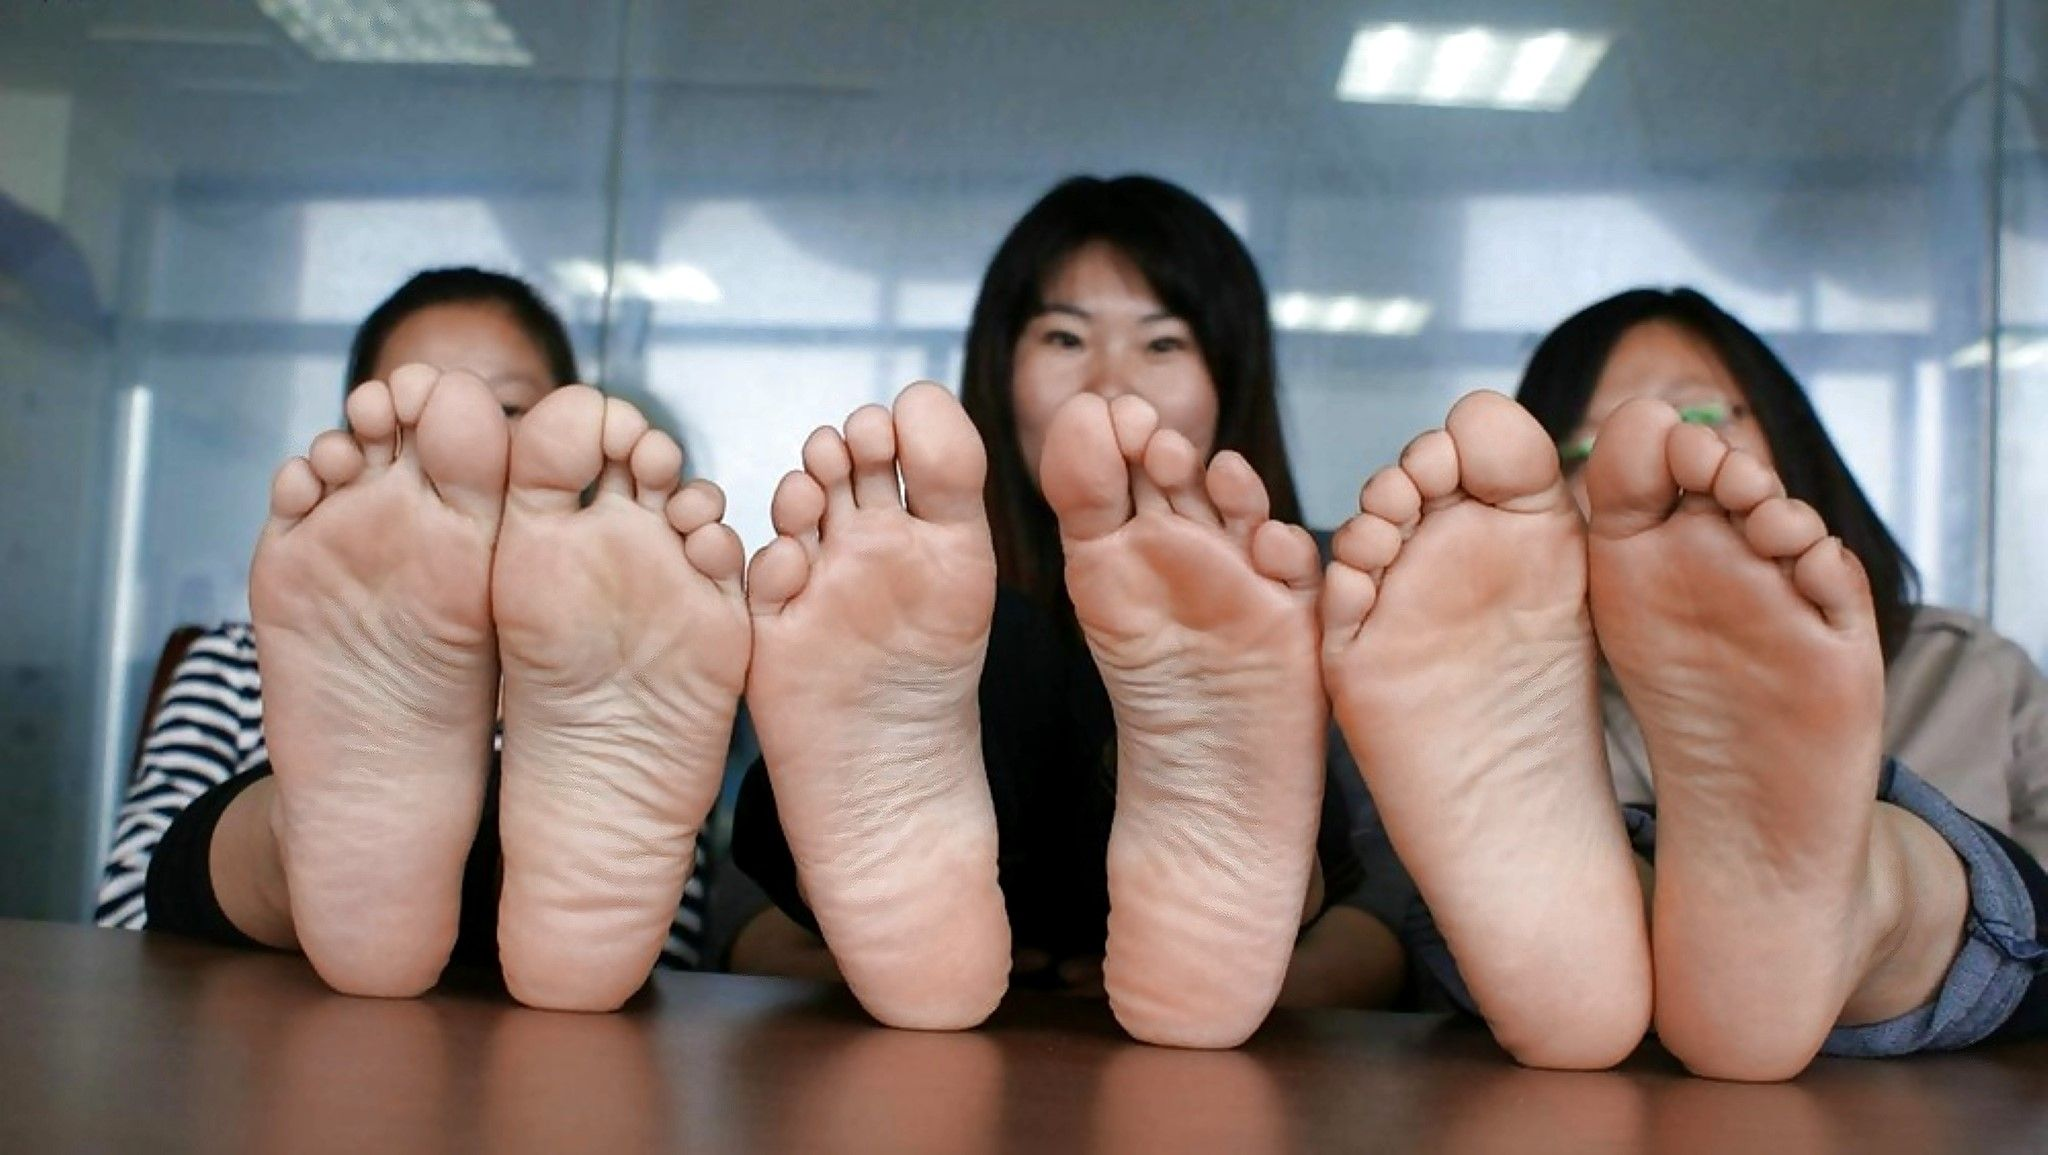 asian-girls-toes-swimsuit-nudity